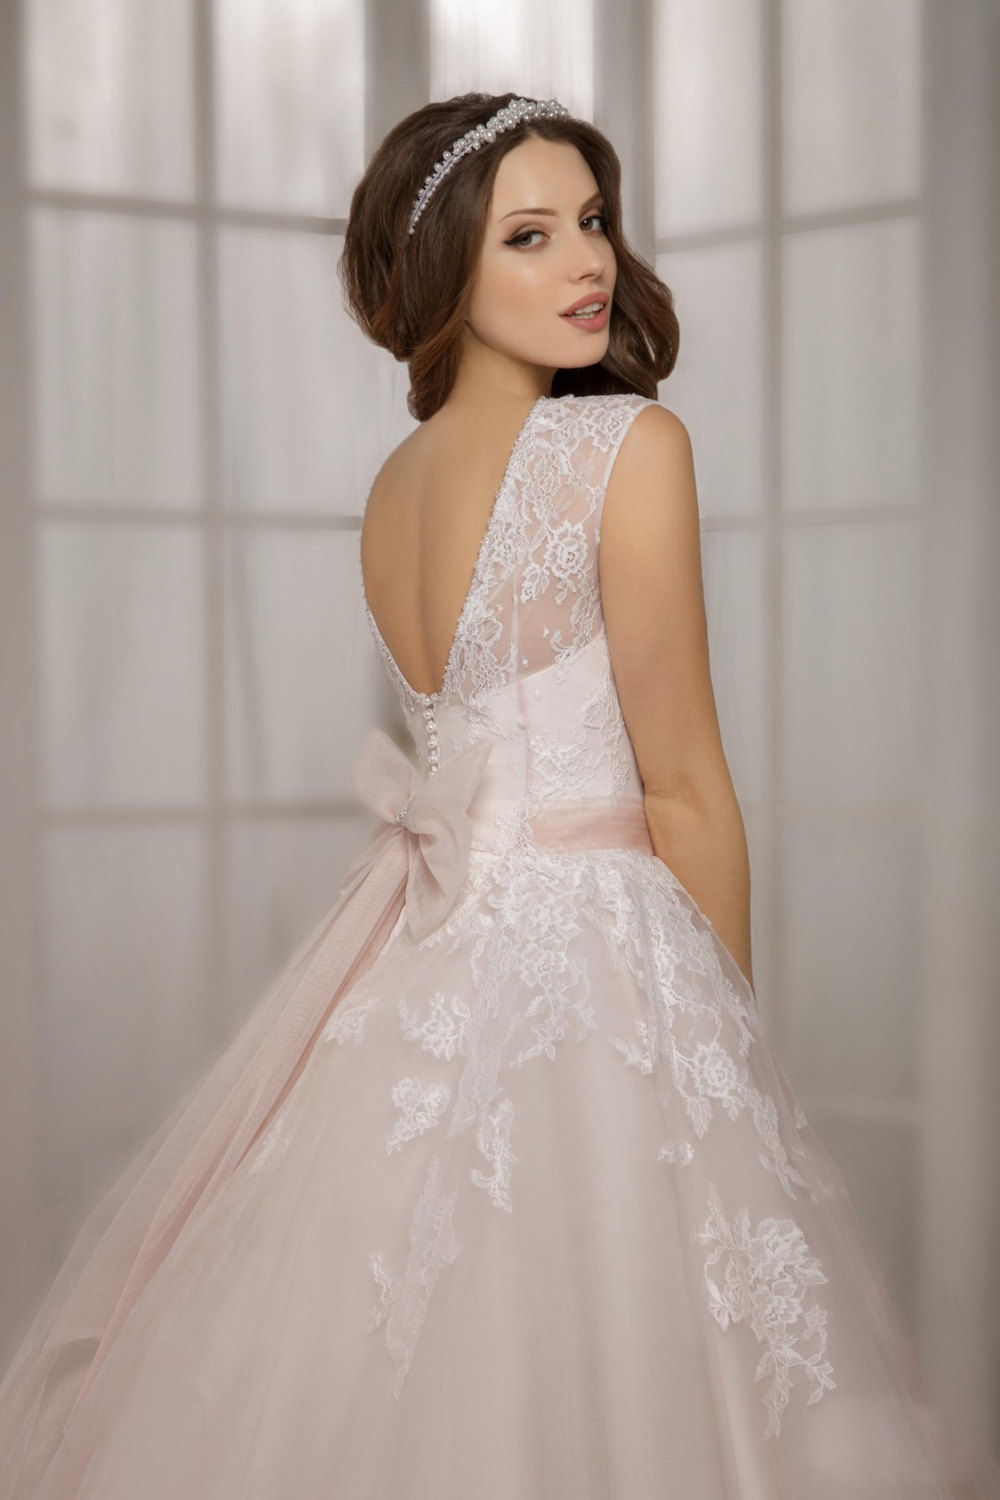 Newest light pink lace ball gowns Wedding Dresses with sashes ...